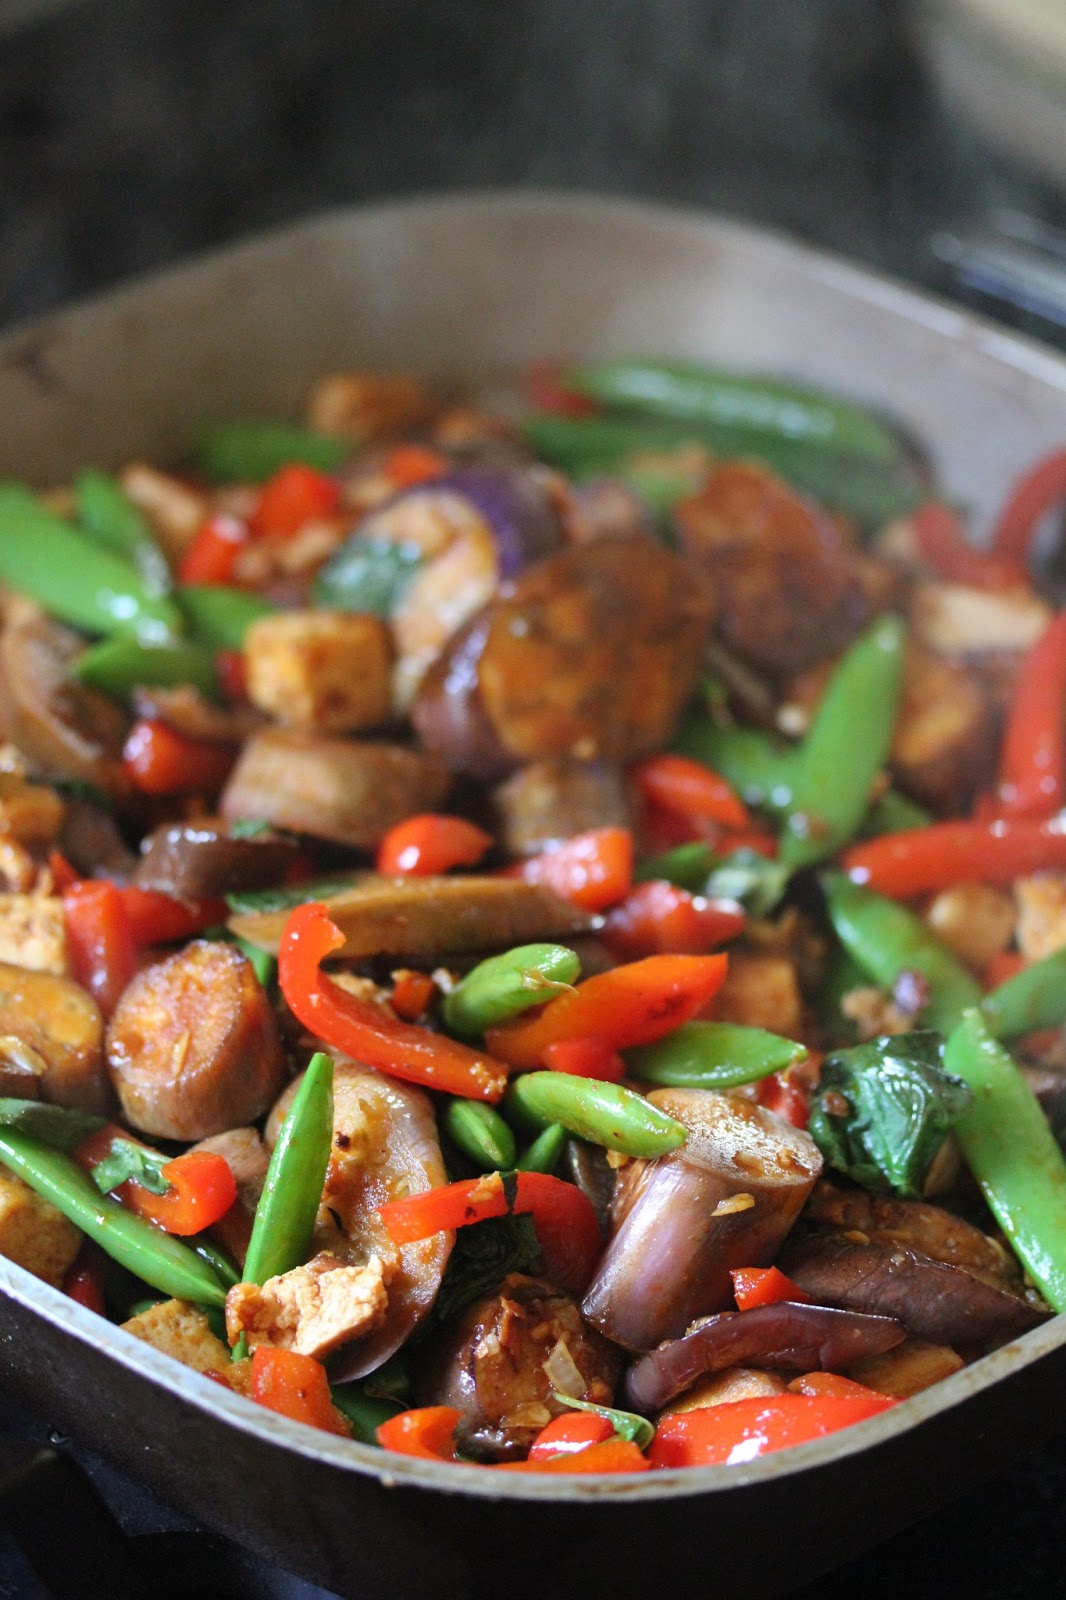 Kitchen Grrrls.: Vegan Tofu Veggie Stir-Fry